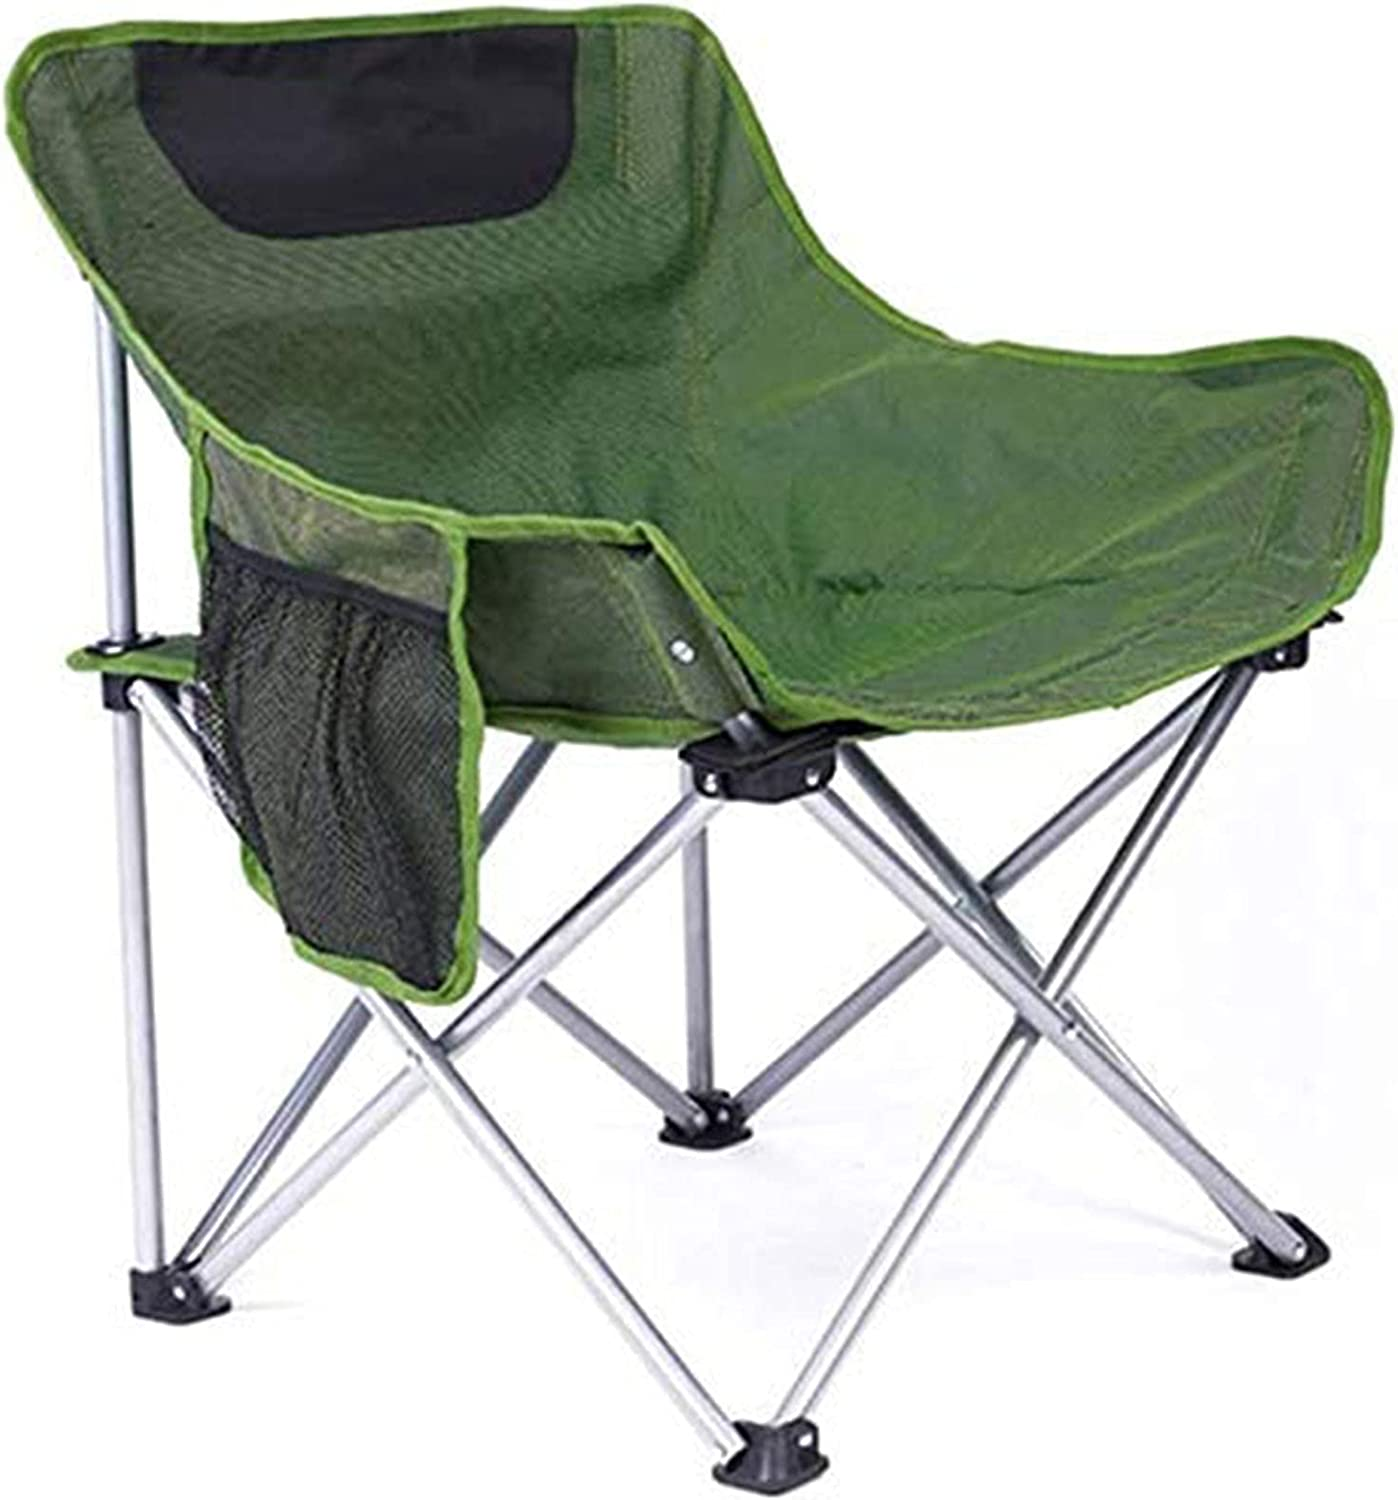 ZIXUAAB A surprise price is realized A surprise price is realized Camping ChairporSun Lounger Recliner Outdo Chair Folding